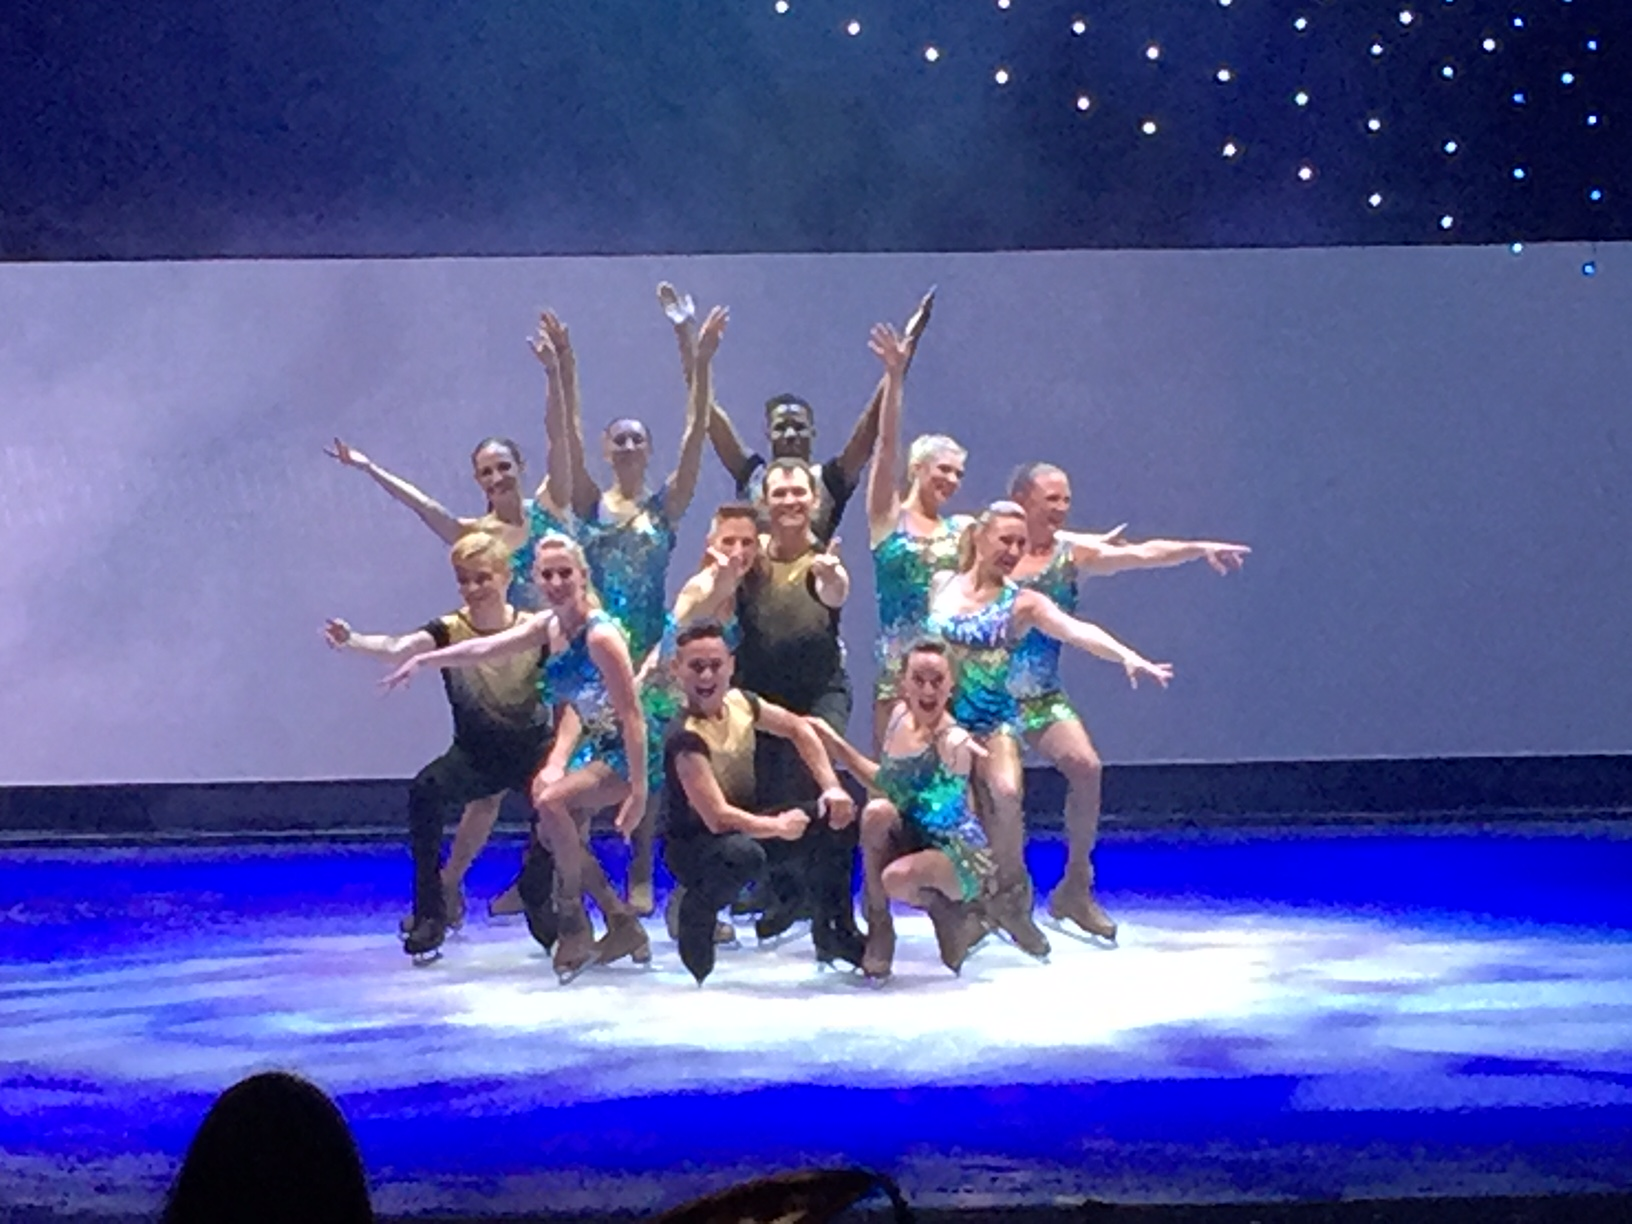 Review Of Turn It Up The Hottest Show On Ice At Busch